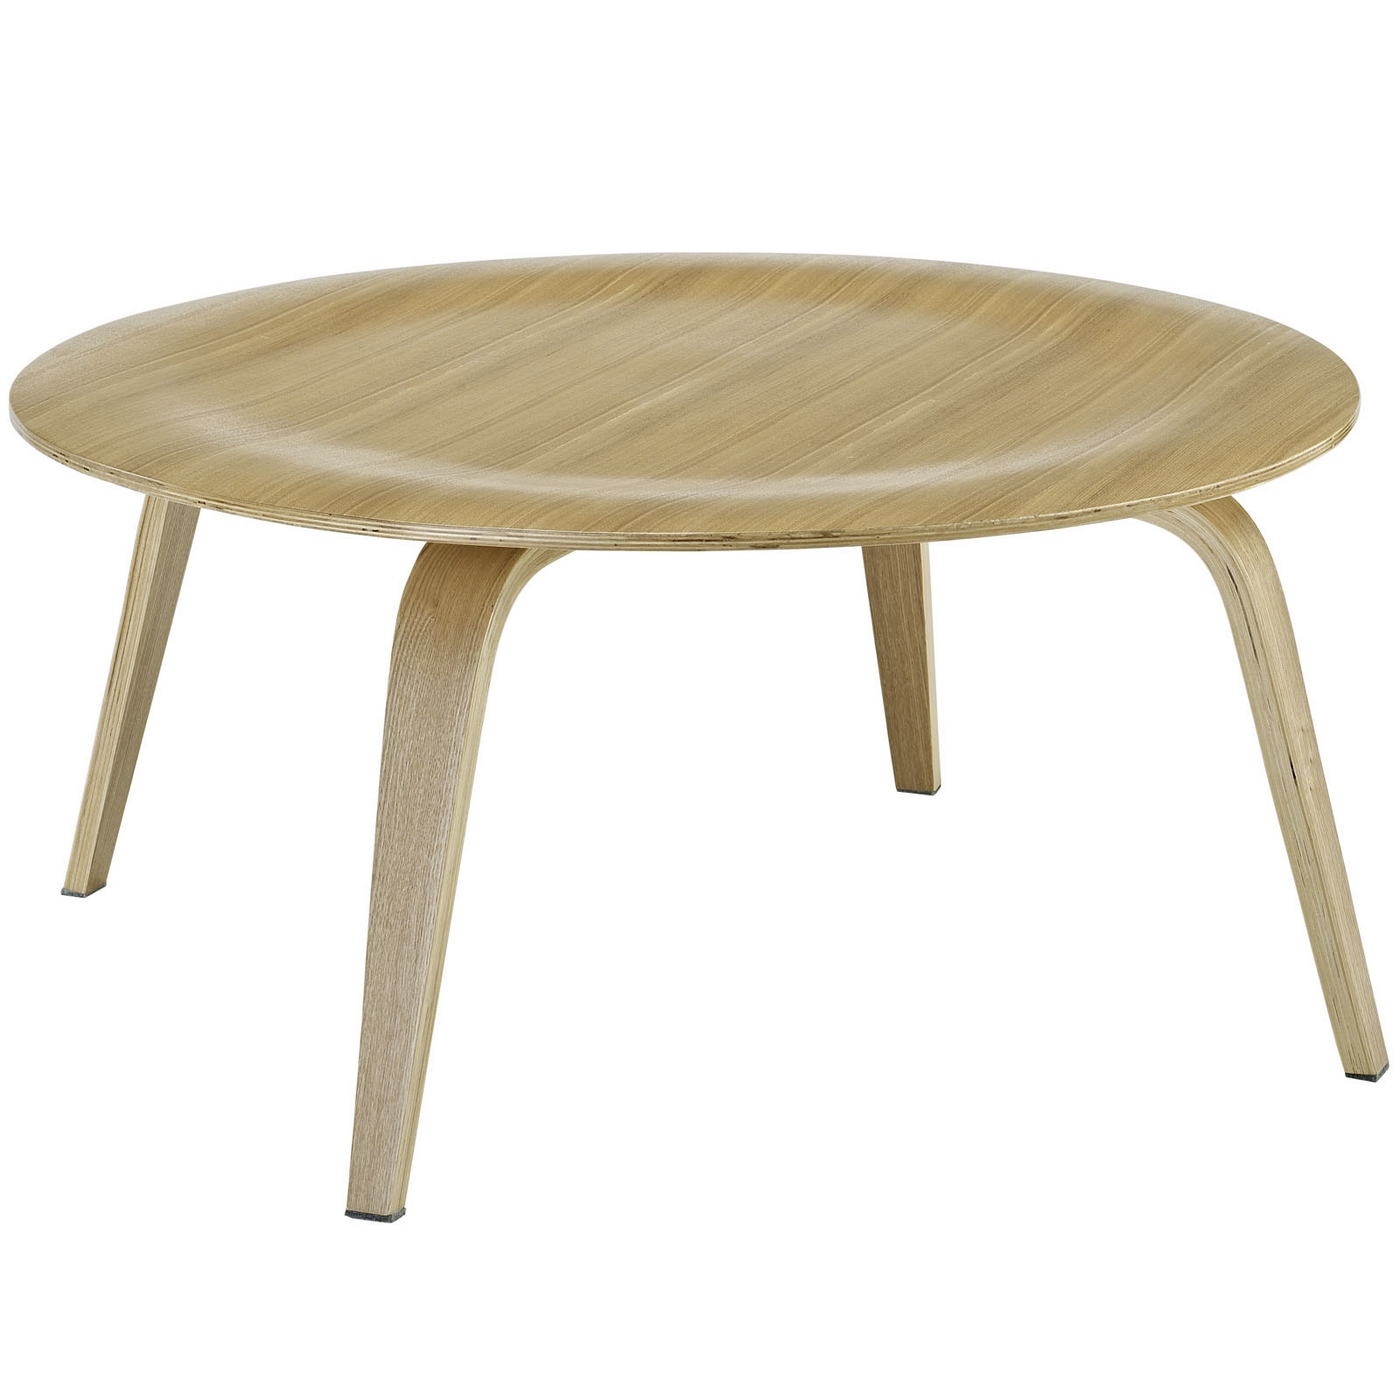 Plywood Modern Wood Grain Panel Round Coffee Table Natural